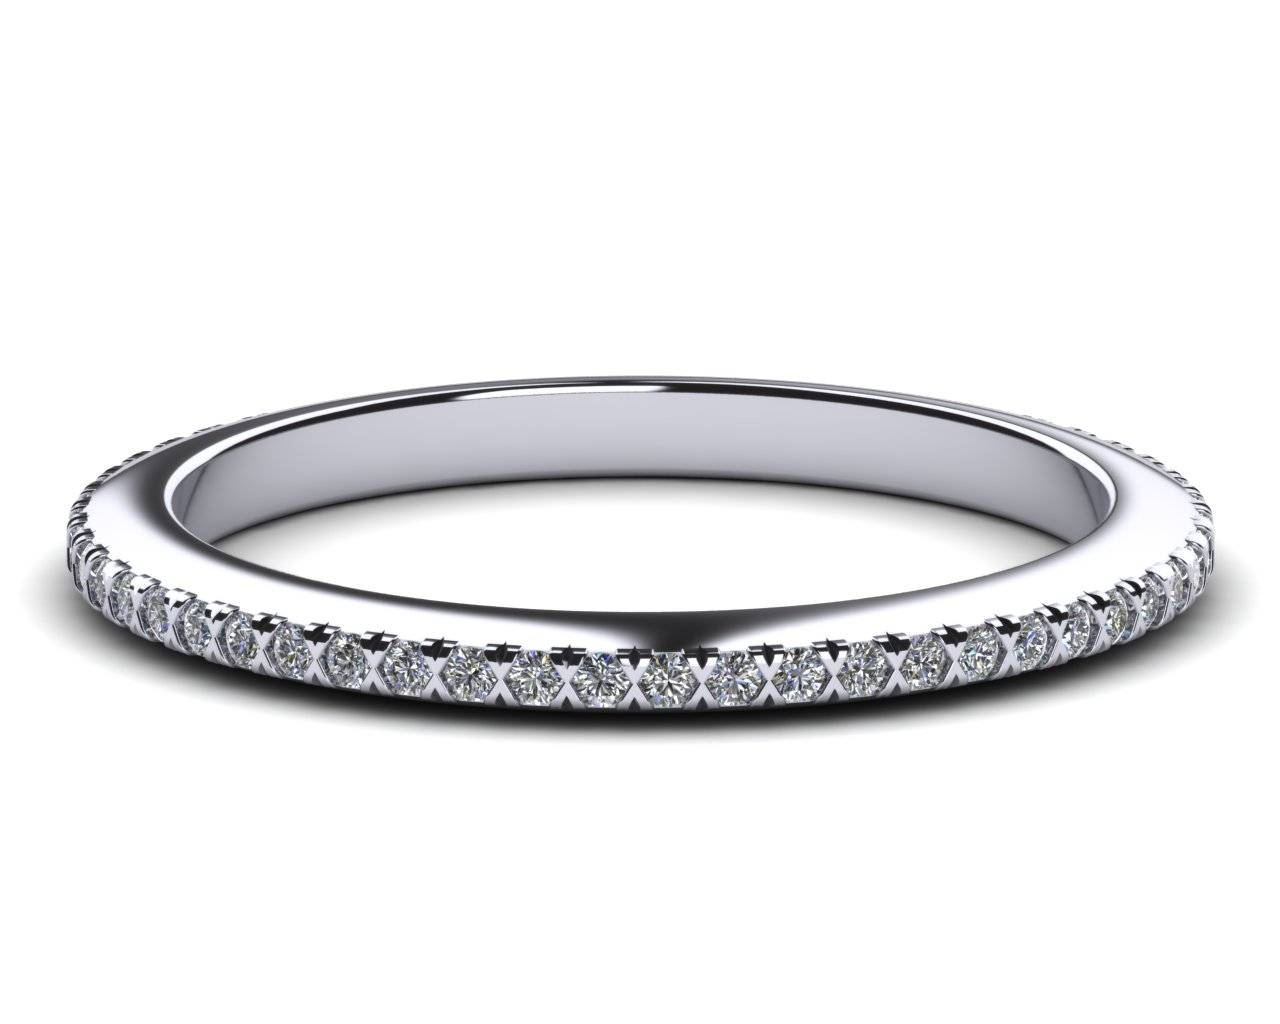 Platinum Diamond(G,si) Micro Pave Band Regarding Micro Pave Wedding Bands (View 11 of 15)